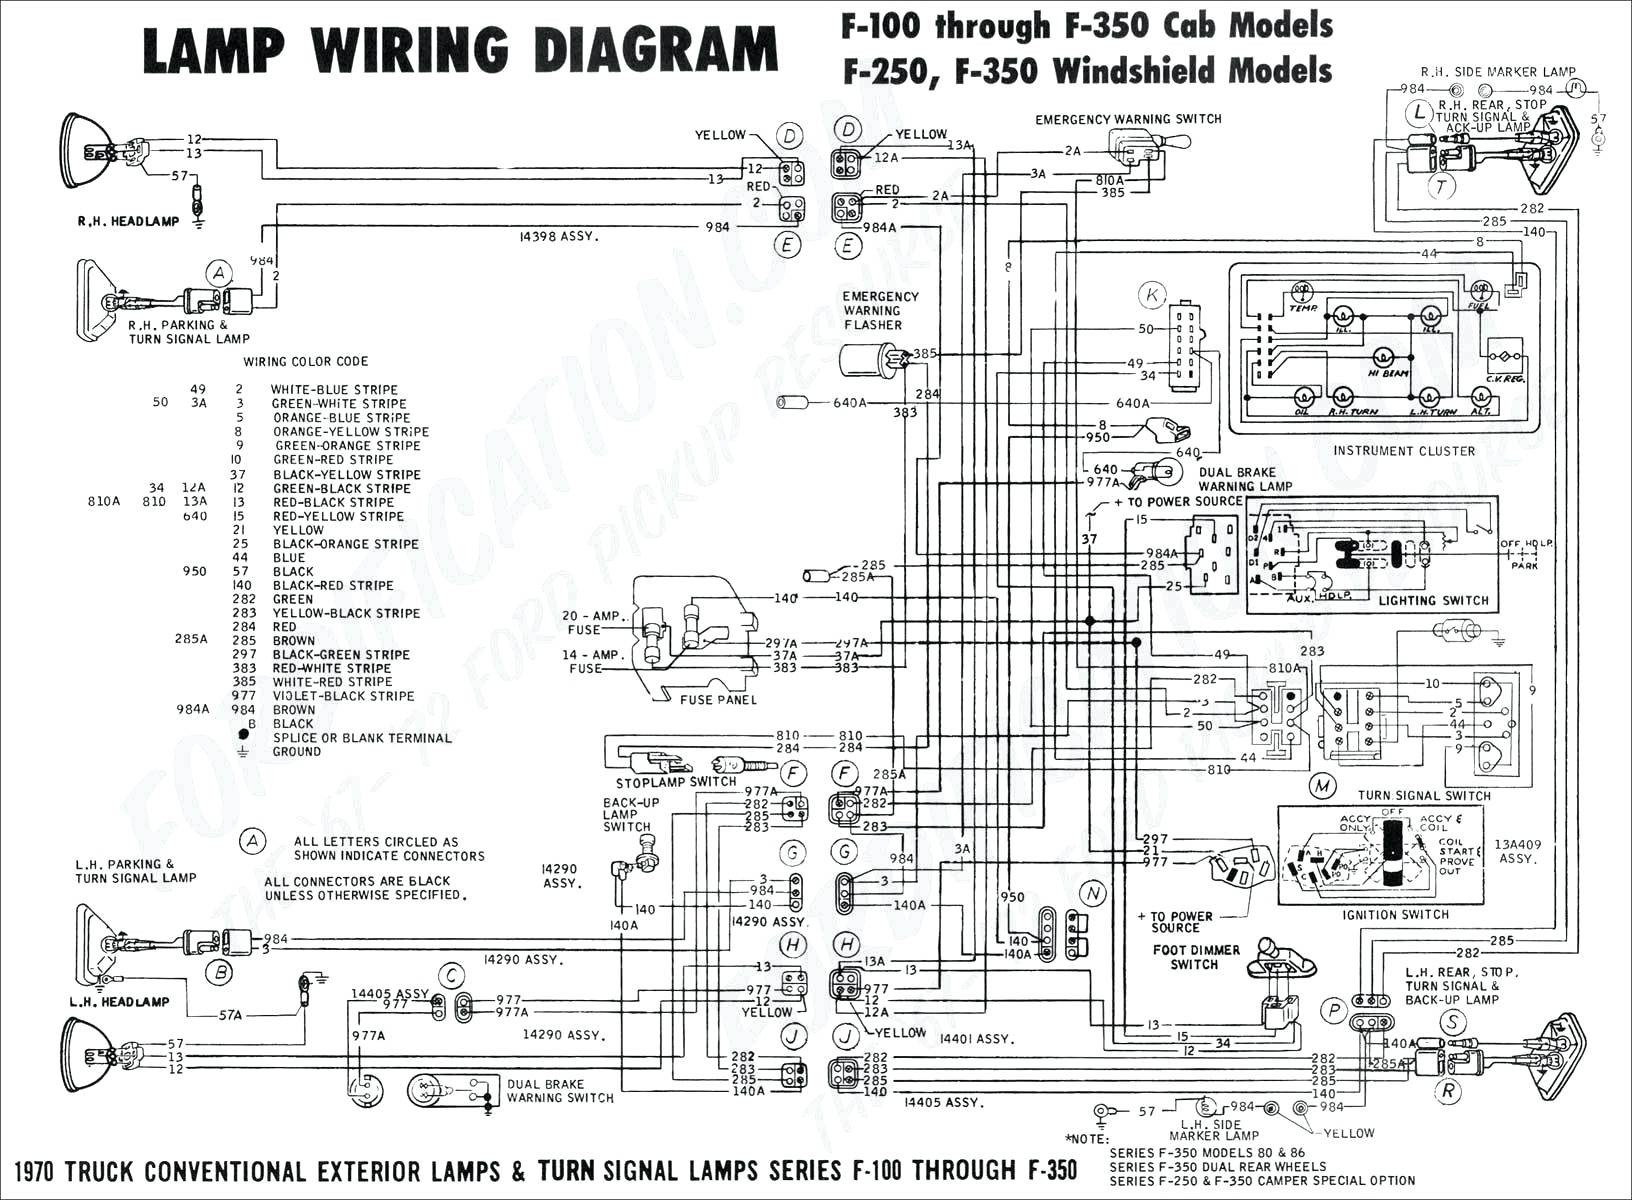 2001 Ford Wiper Diagram - Read Online Wiring Diagram  Ranger Wiper Motor Wiring Diagram on wwf wiper motor diagram, 2005 bobcat s185 windshield wioer motor diagram, wiper wiring hi-low, ford wiper motor diagram, circuit diagram, briggs and stratton electrical diagram, wiper motor cover, wiper motor toyota, front bumper assembly diagram, solenoid switch diagram, wiper switch diagram, wiper motor cable, gm wiper motor diagram, wiper motor parts, vacuum wipers diagram, wiper washer motor, wiper motor wire, wiper motor relay diagram, wiper motor power supply, windshield wiper motor diagram,